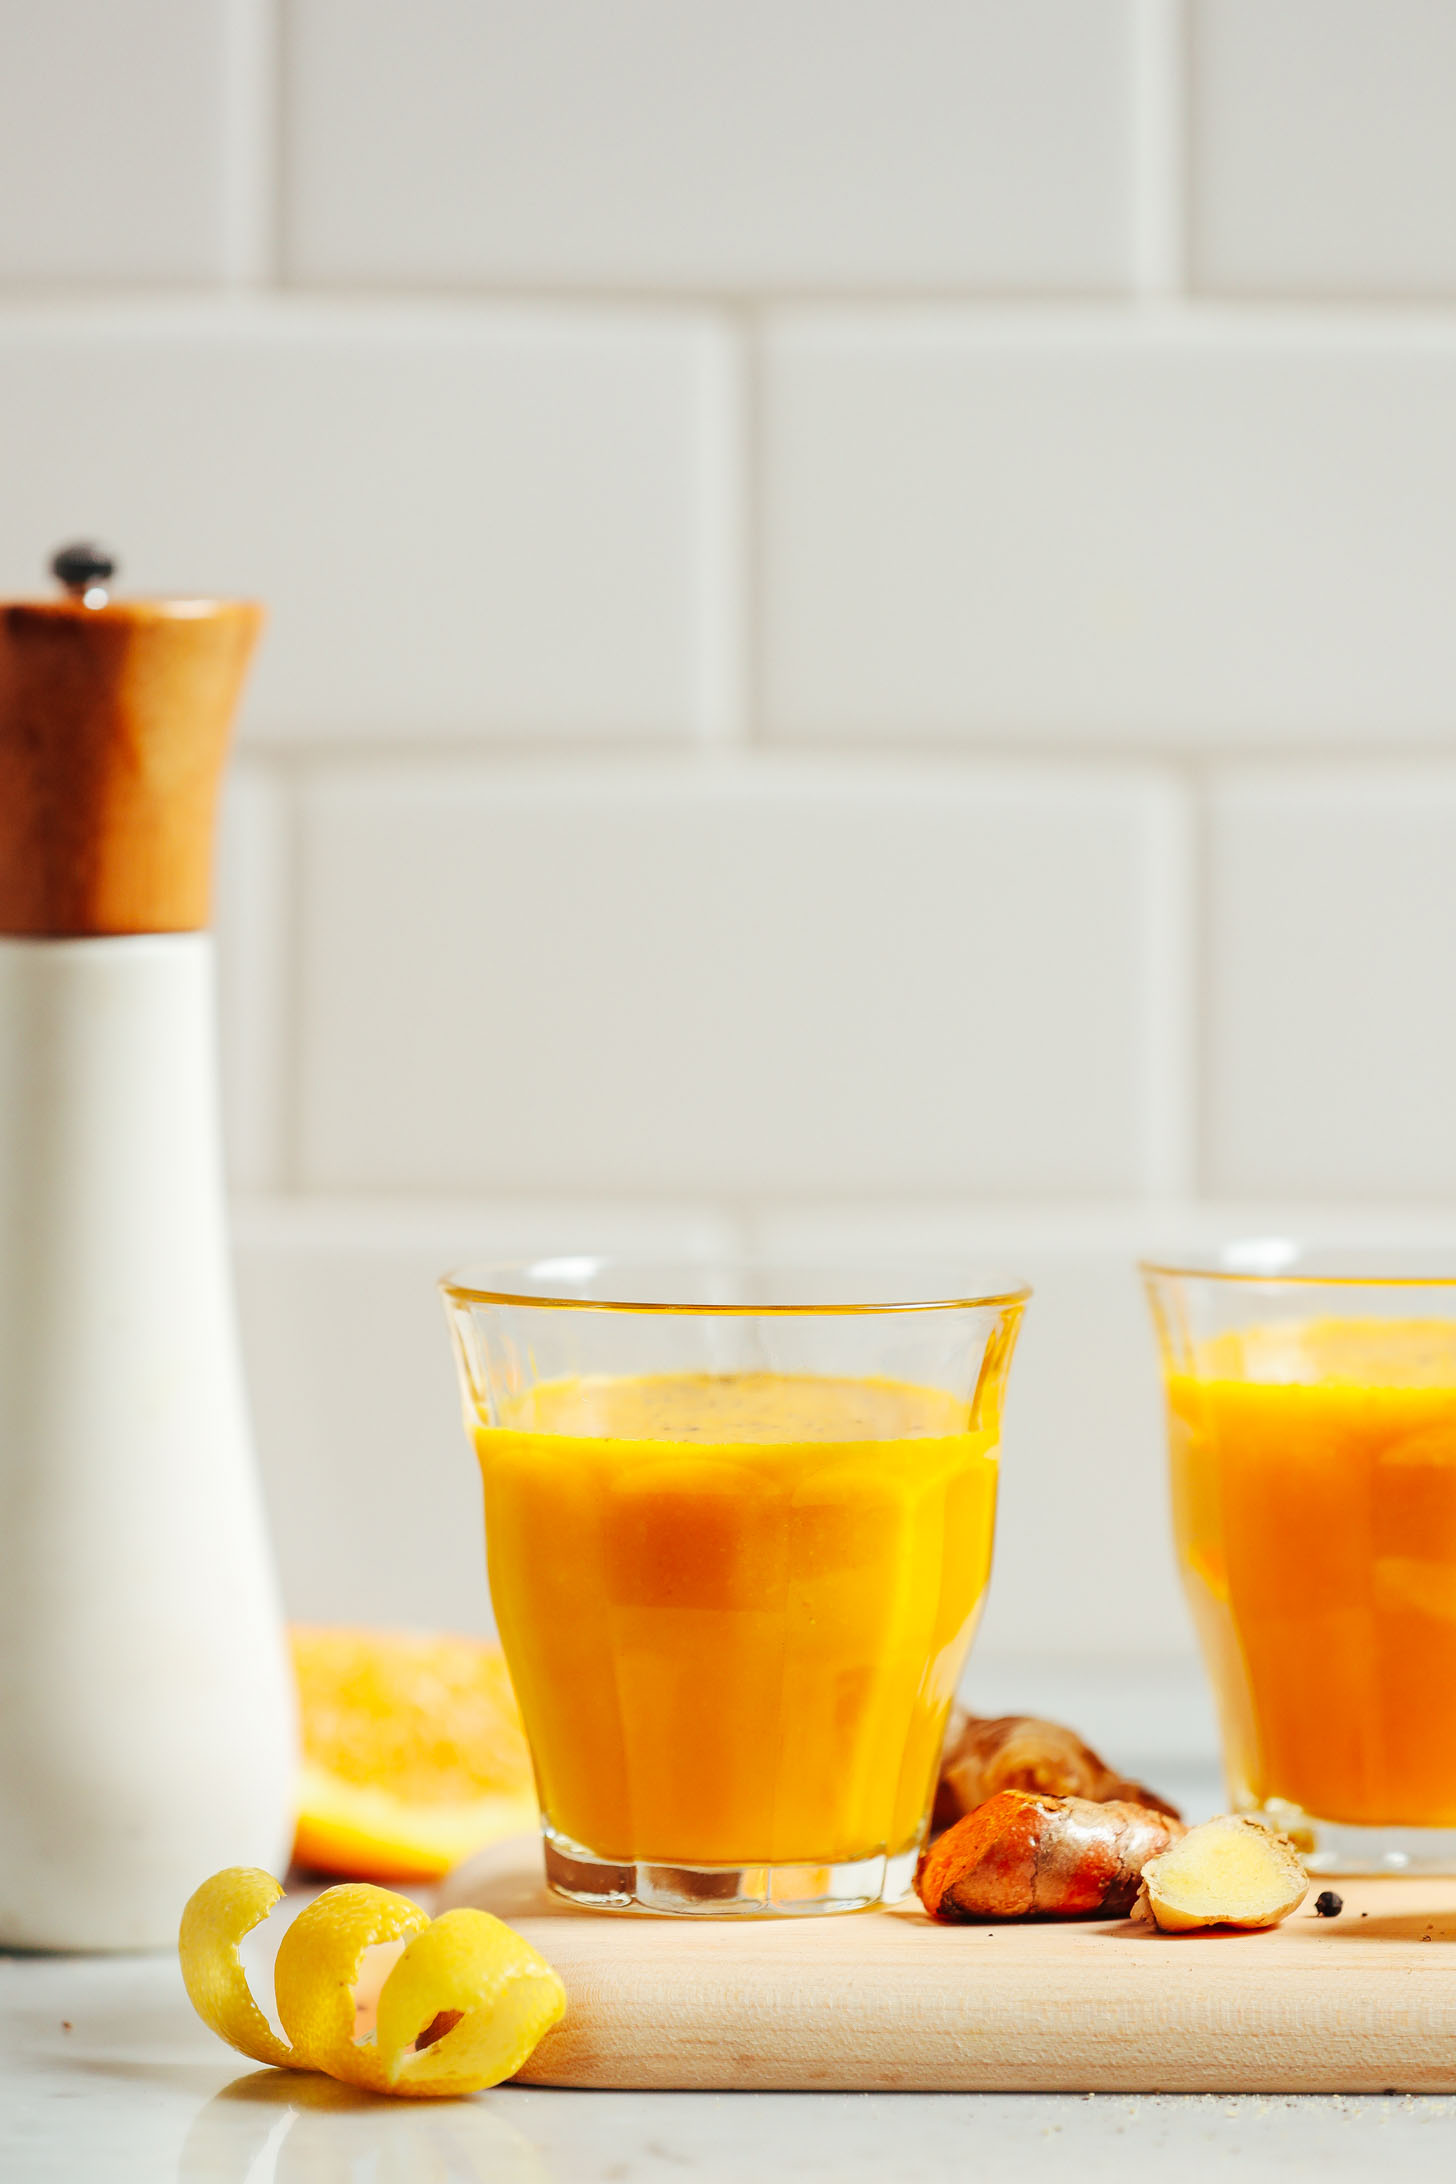 Turmeric Wellness Shots on a cutting board ready to drink for a healthy boost